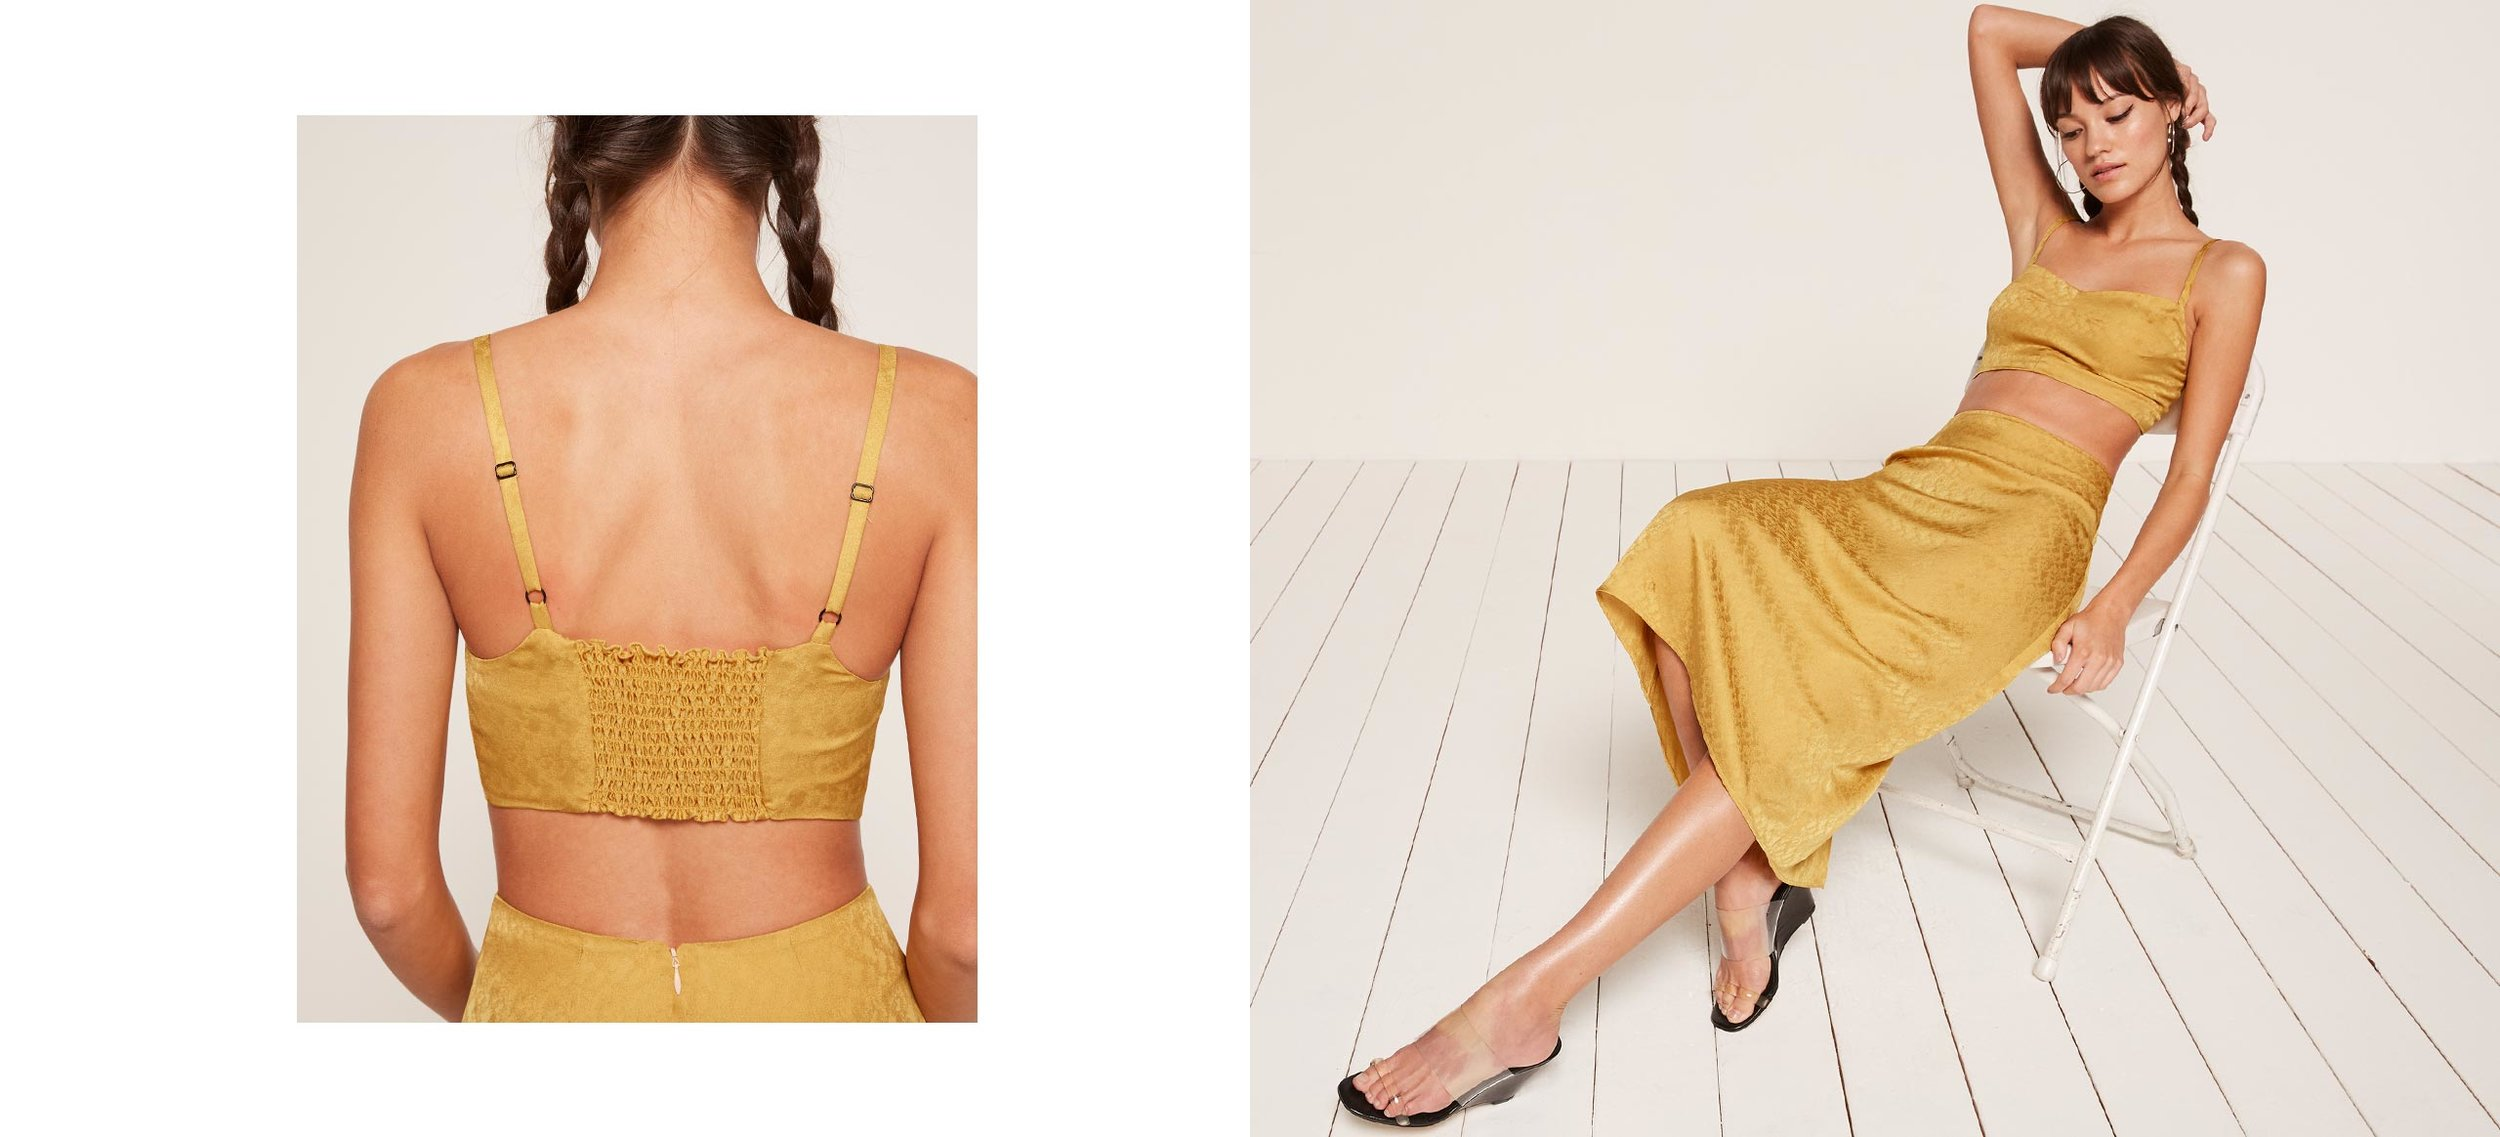 here comes the cabana girl   Nova Two Piece / Reformation / $139